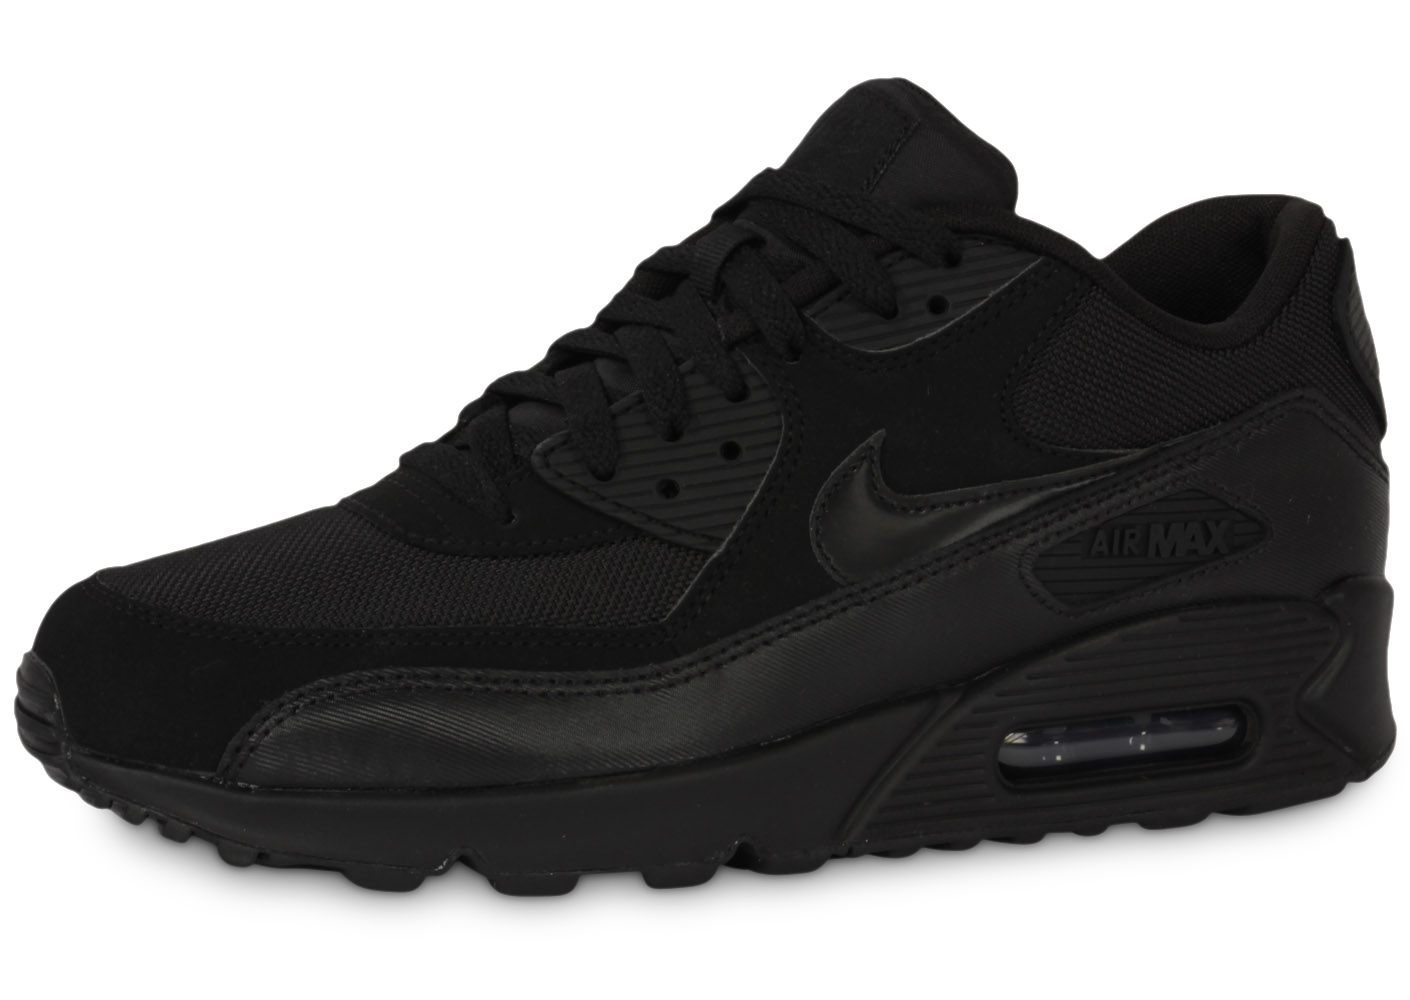 Nike homme air max 90 noire baskets